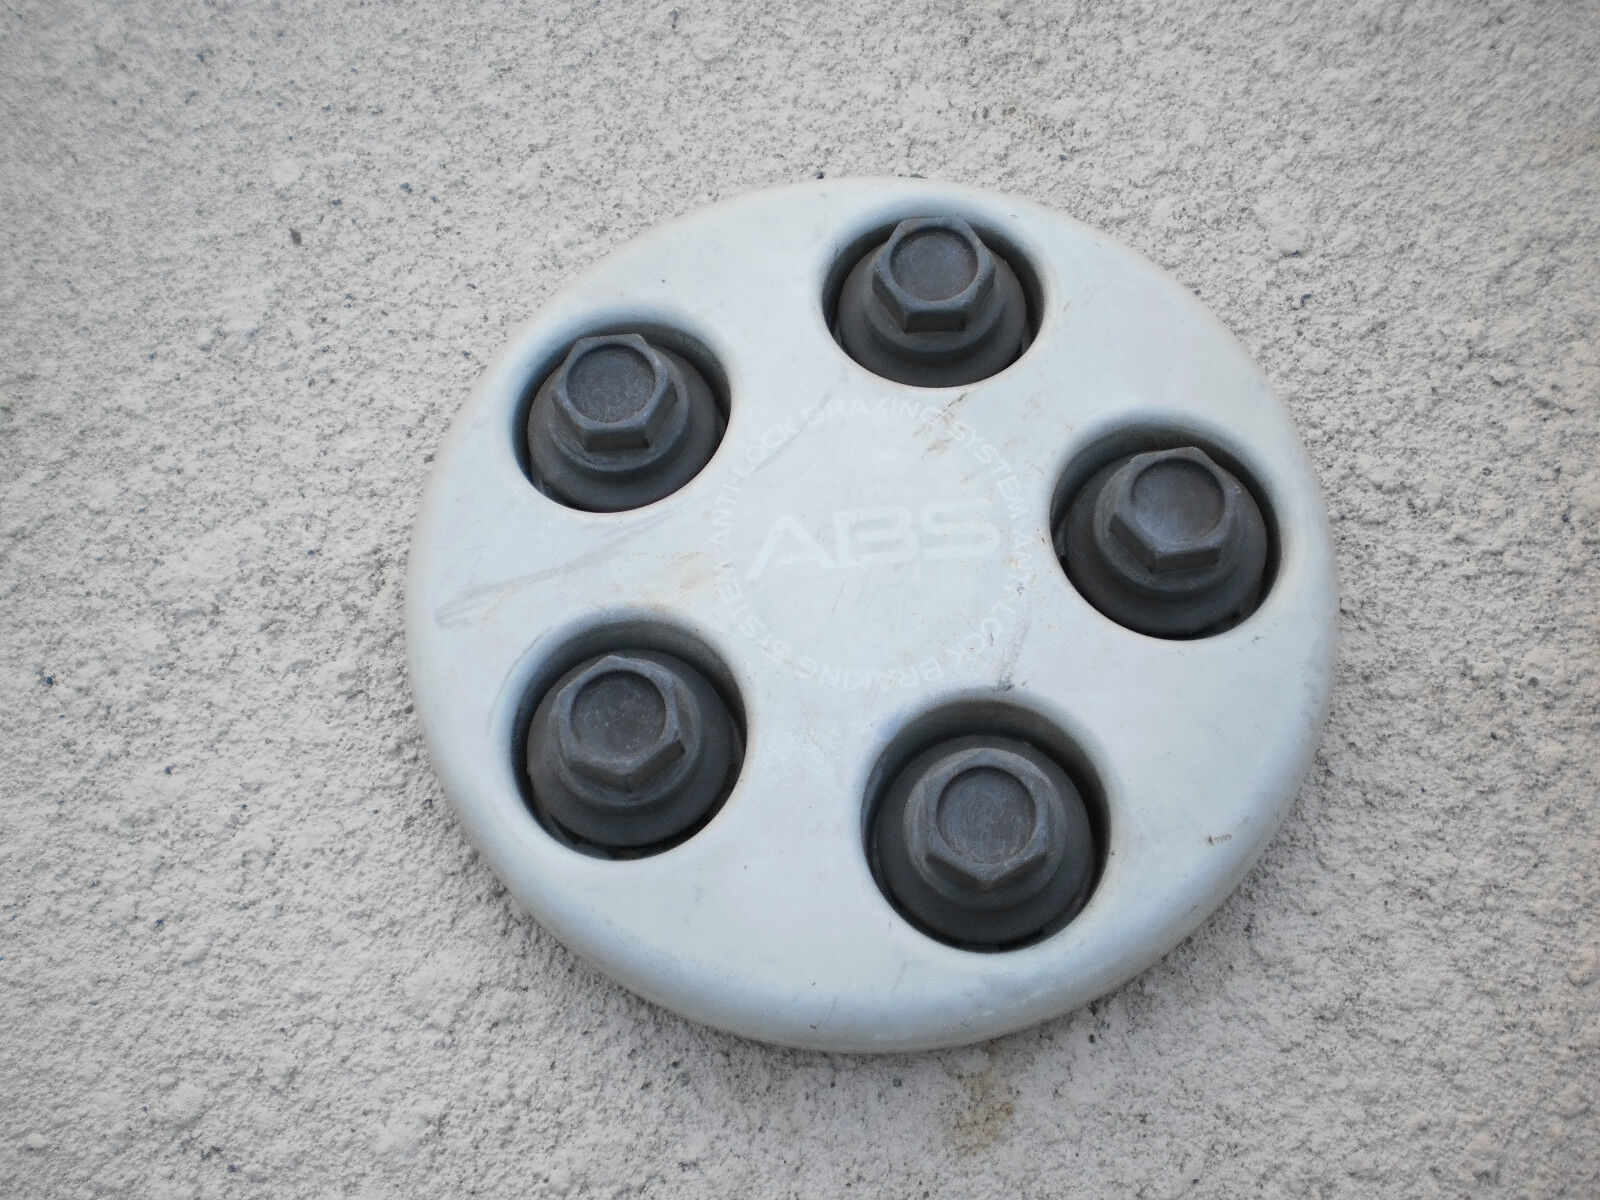 Used 1998 Pontiac Grand Am Wheel Center Caps For Sale 1996 Cap 9592668 Oe 6522 White 9592218